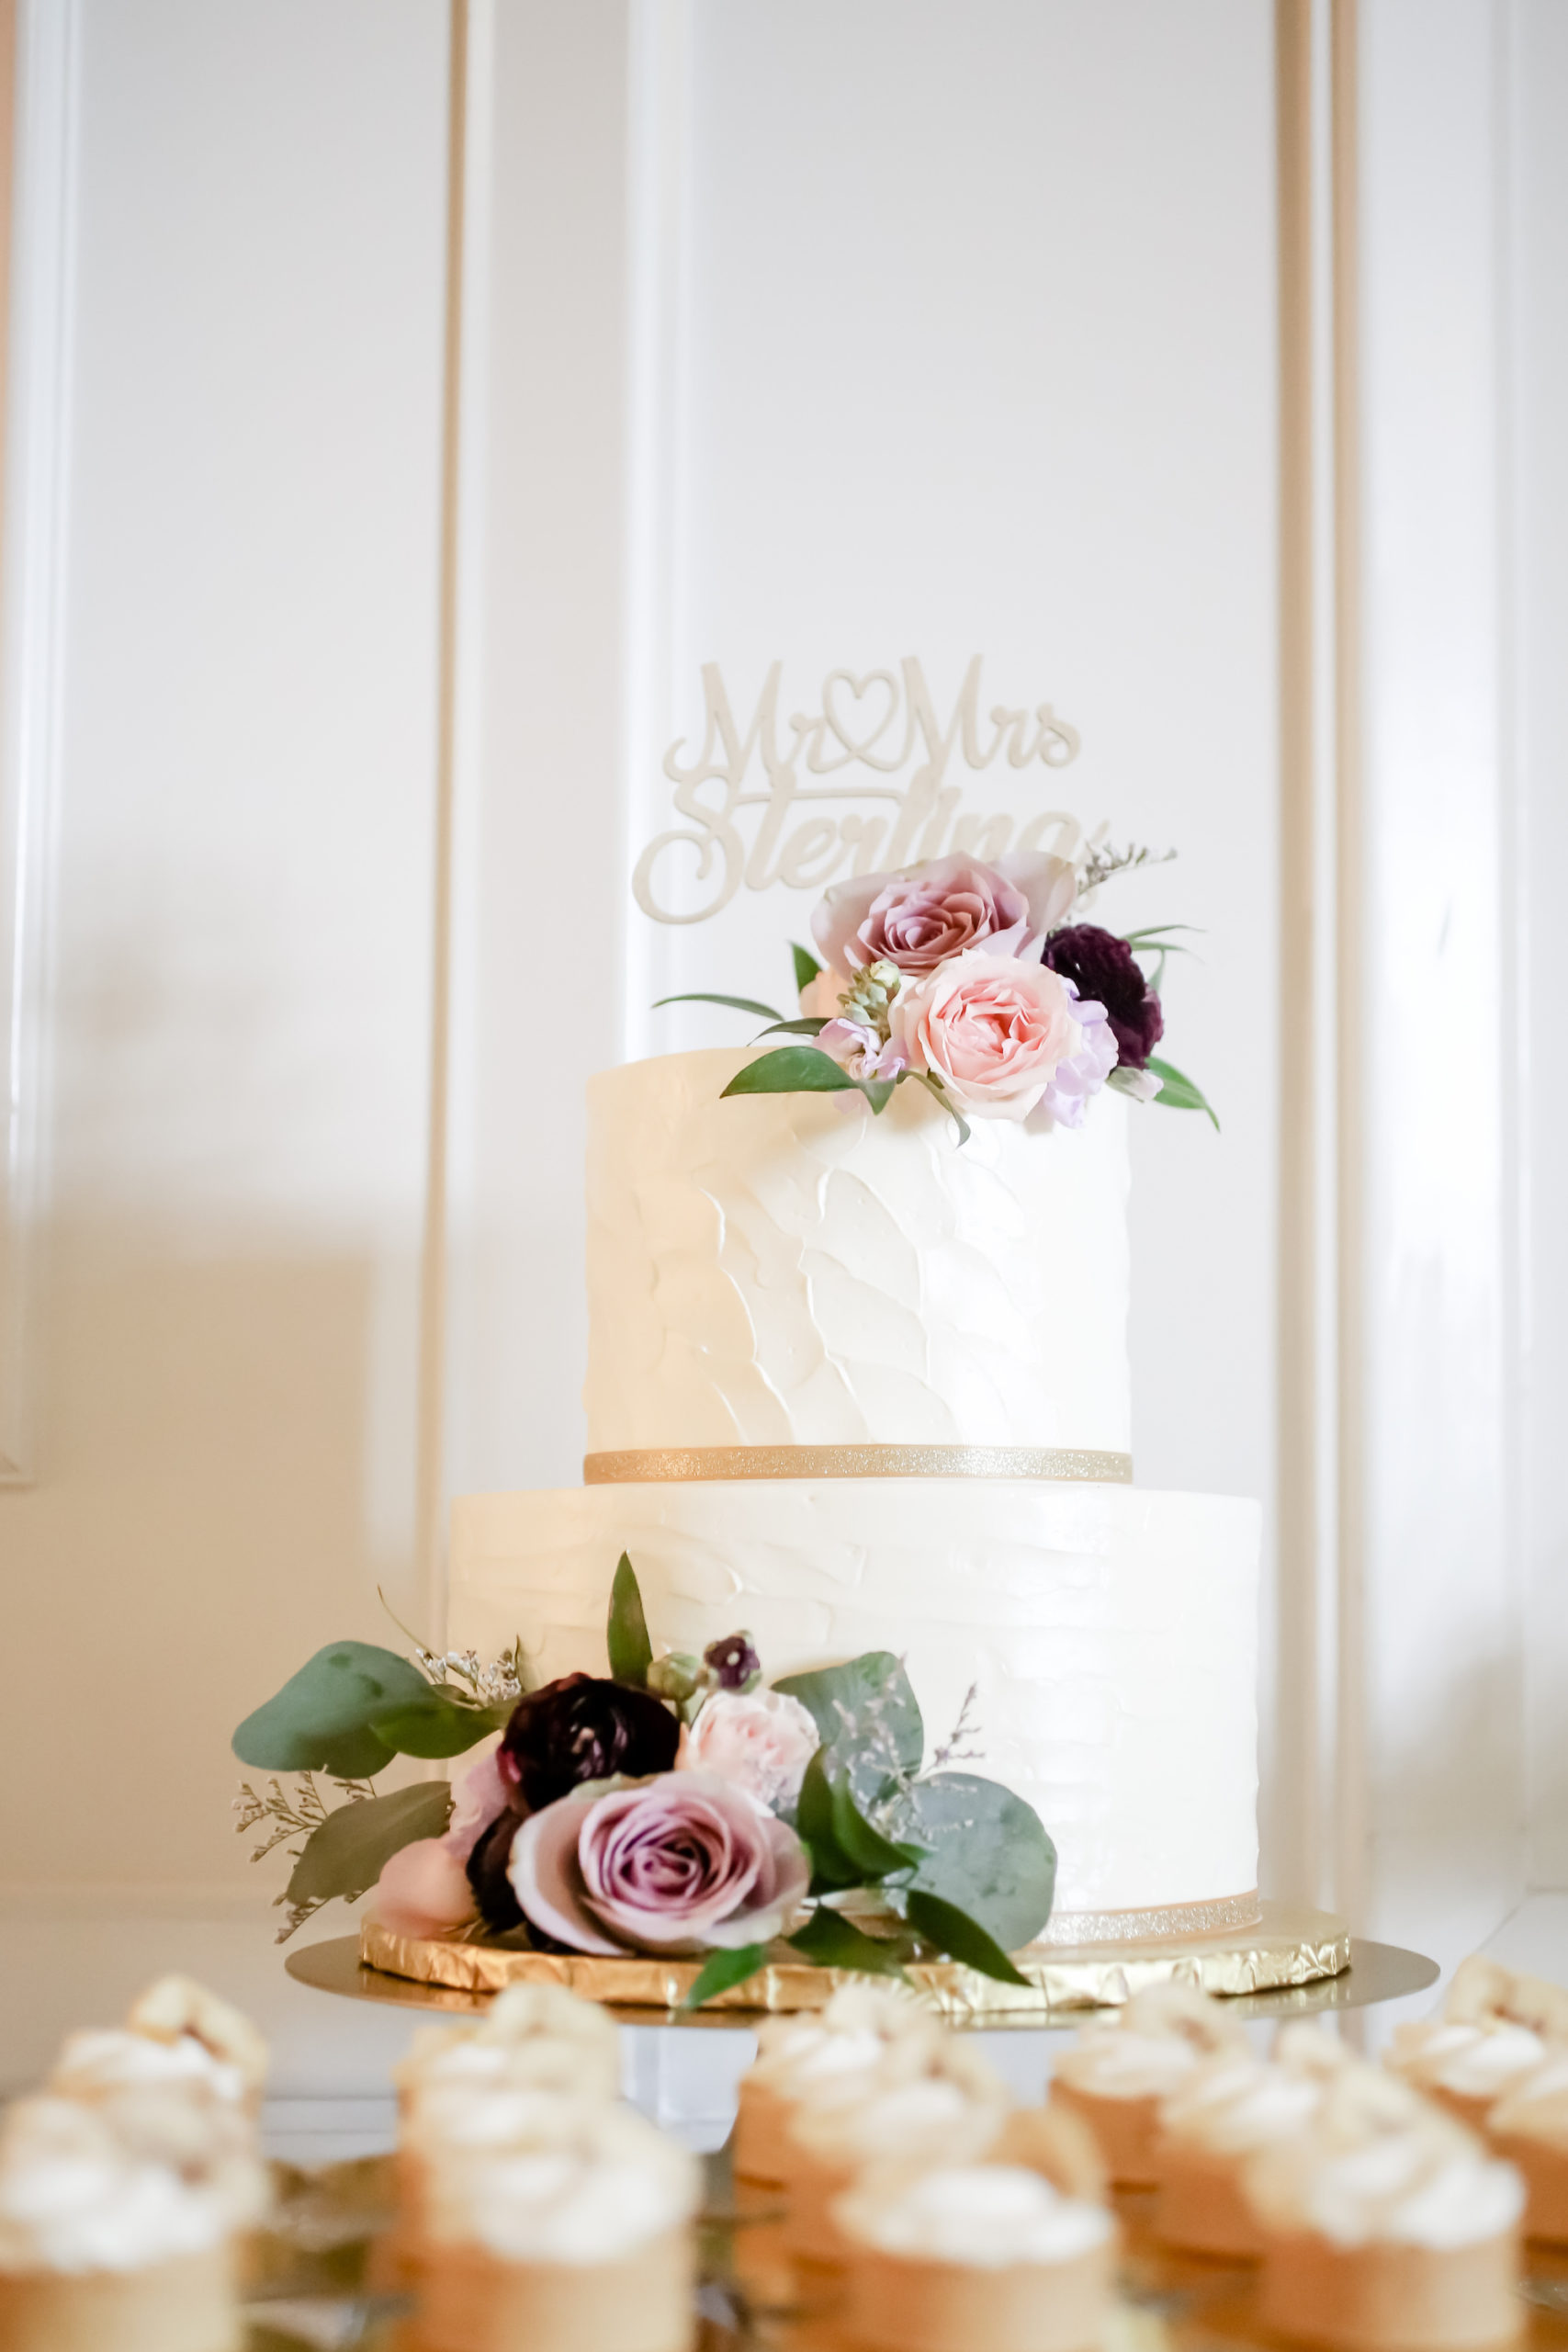 Elegant Spring Time Inspired Wedding Cake, Classic White Two Tier Buttercream Cake with Textured Frosting, Purple, Pink and Mauve Rose Floral Accents with Custom Cake Topper and Dessert Table   Tampa Bay Wedding Cake and Dessert Bakery The Artistic Whisk   Florida Wedding Photographer Lifelong Photography Studio   St. Pete Wedding Planner Blue Skies Weddings and Events